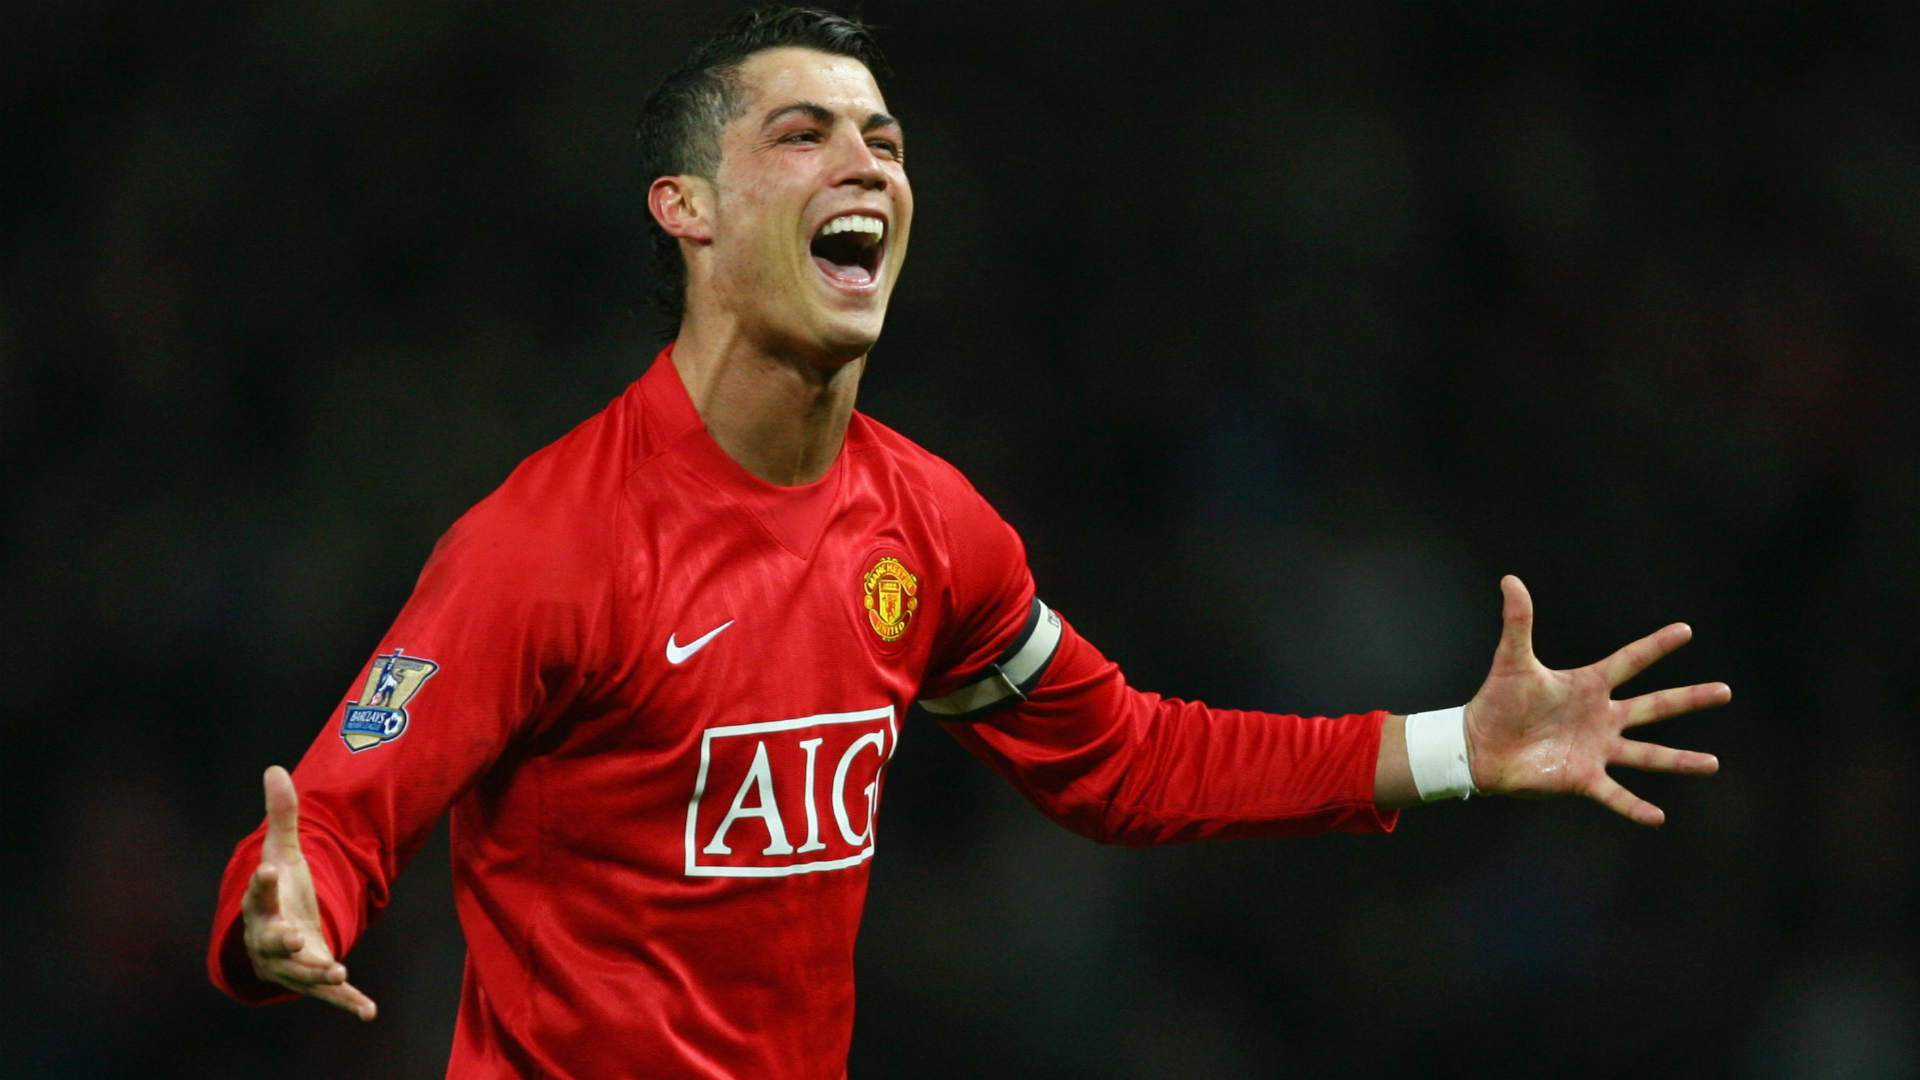 Ronaldo swapped showmanship for goals – Rio Ferdinand | Manchester United FC news